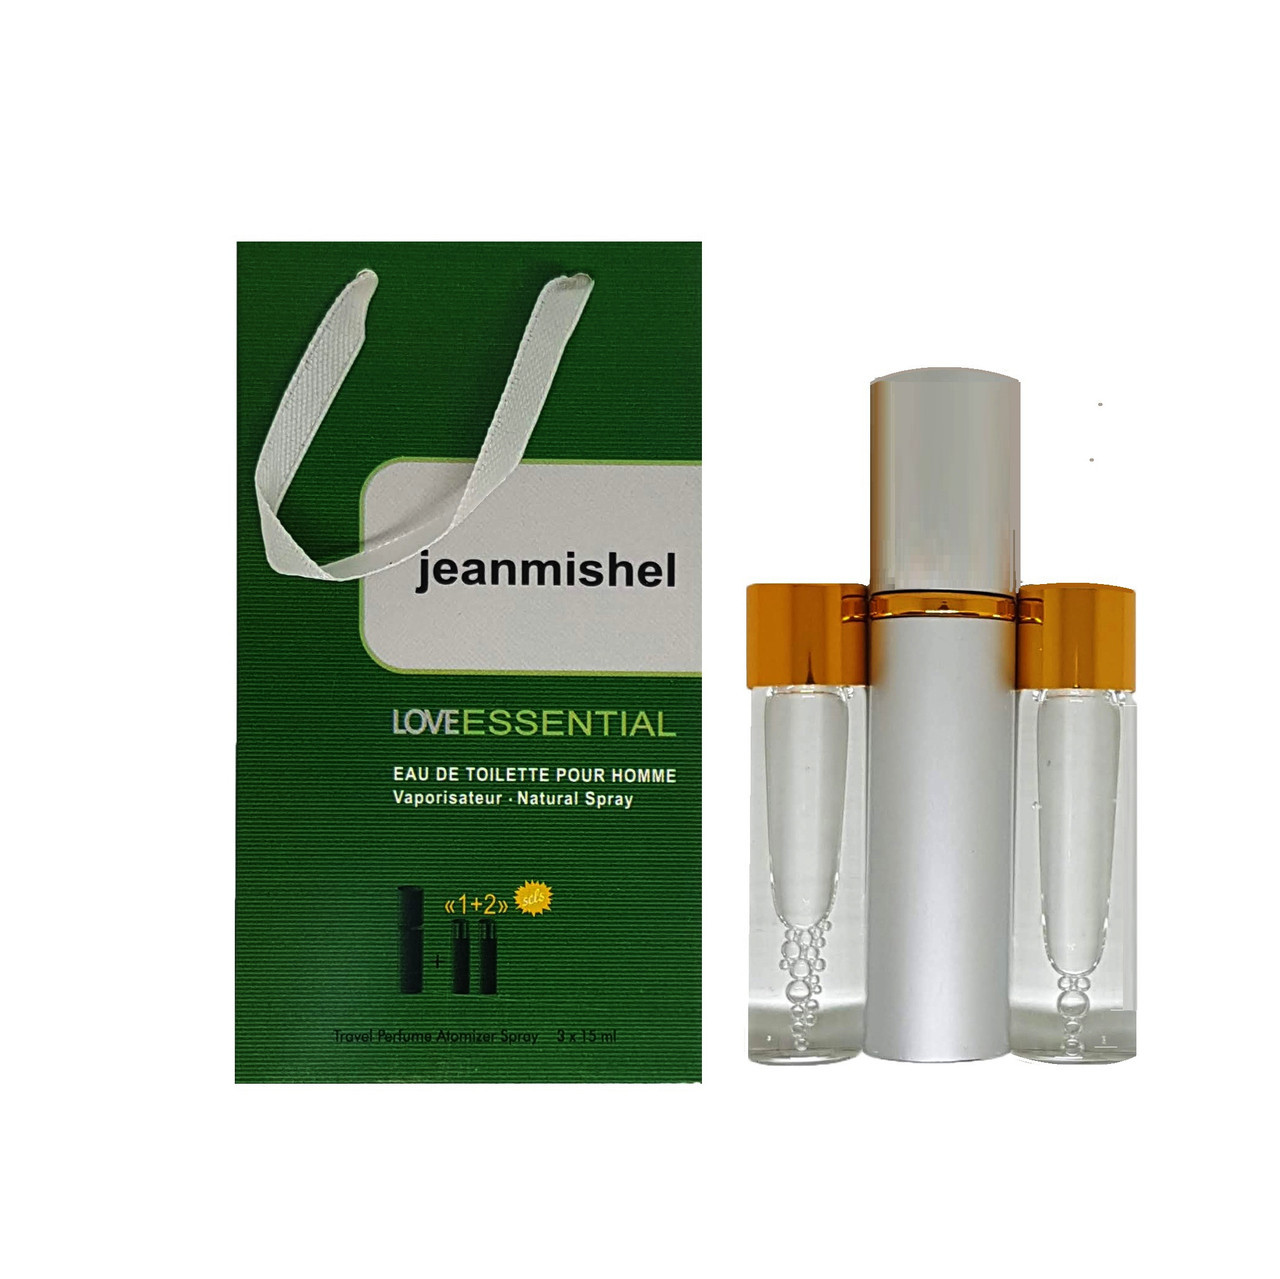 Jeanmishel Love Essential pour homme (56) 3 x 15 ml